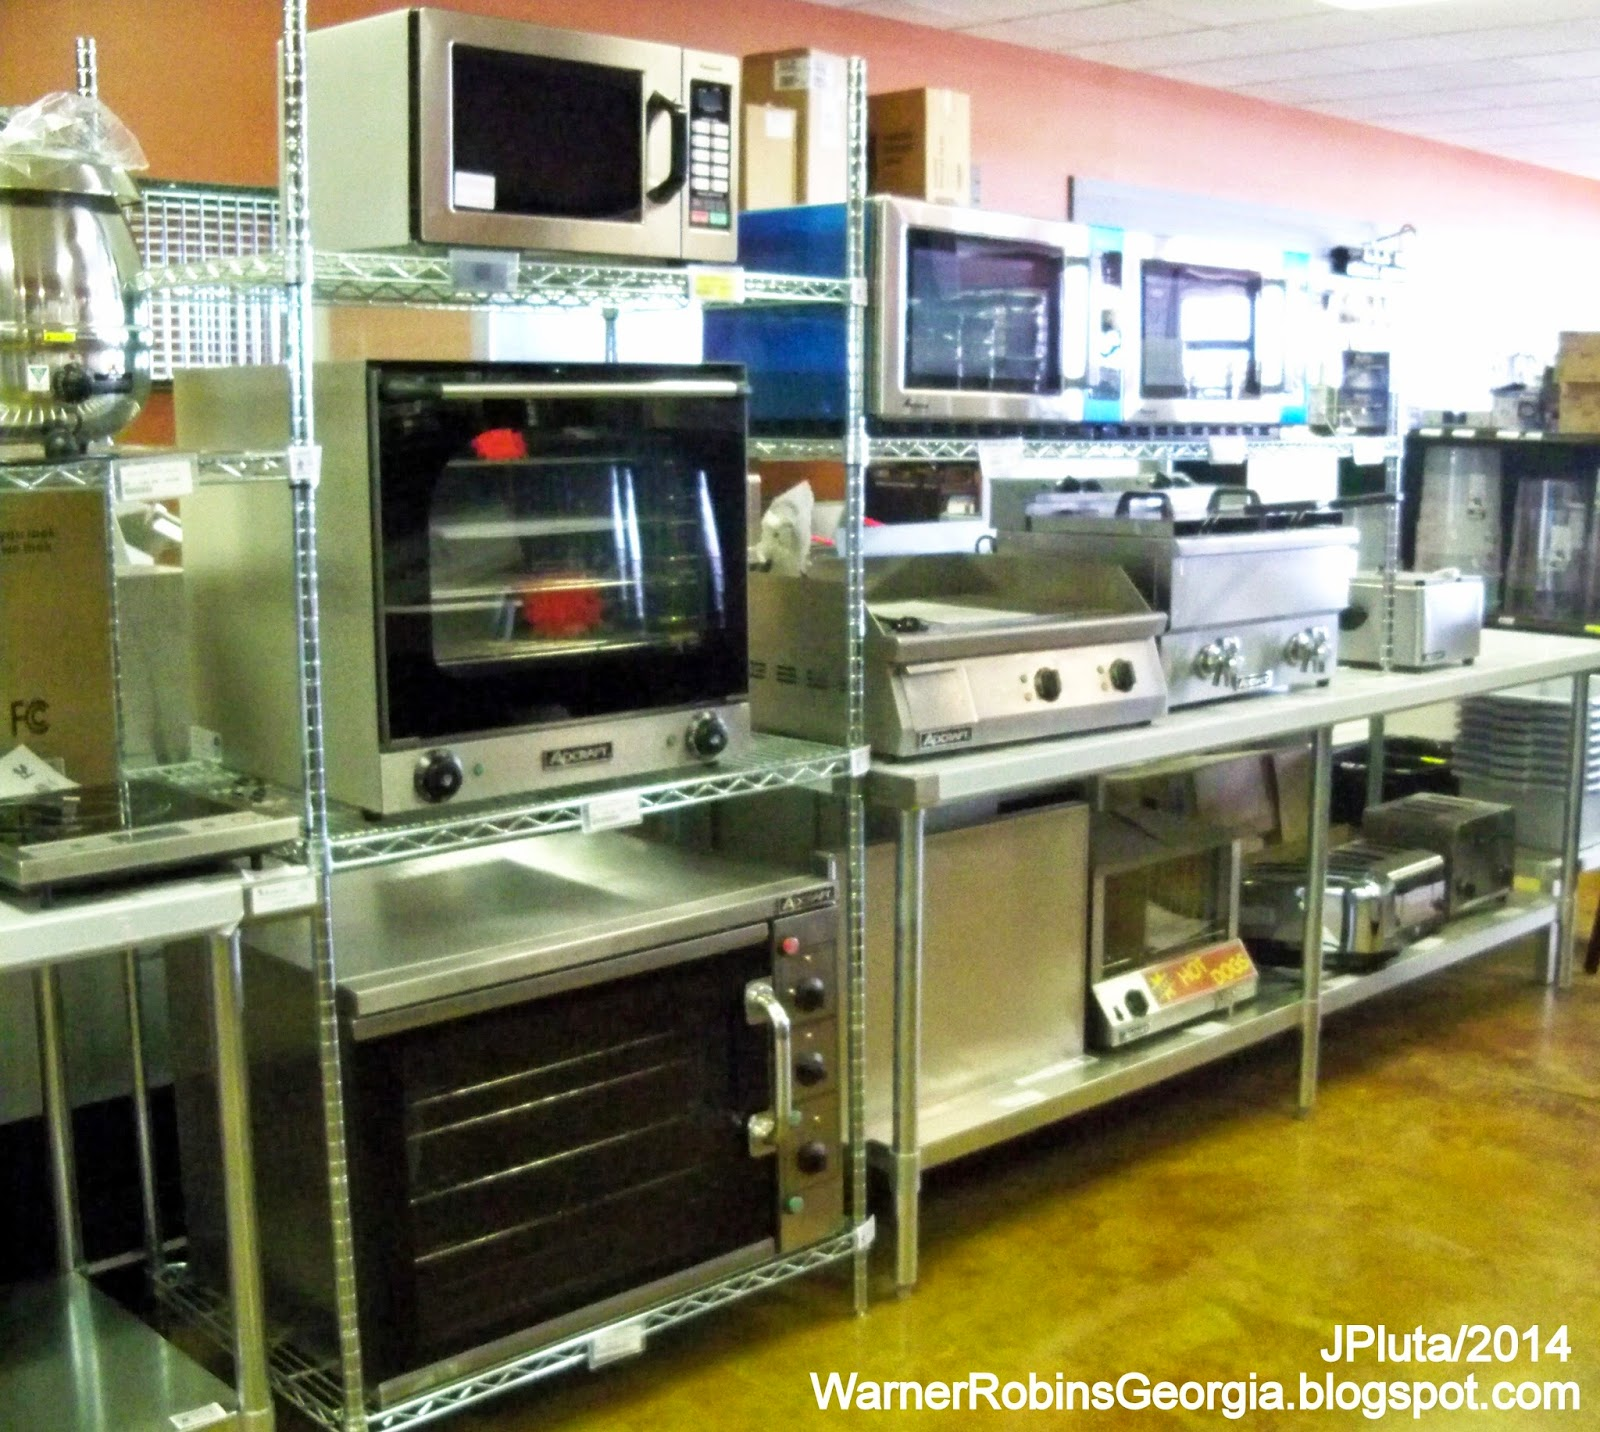 Commercial Kitchen Supply Store Cabinet Organizers Warner Robins Georgia Air Force Base Houston Restaurant